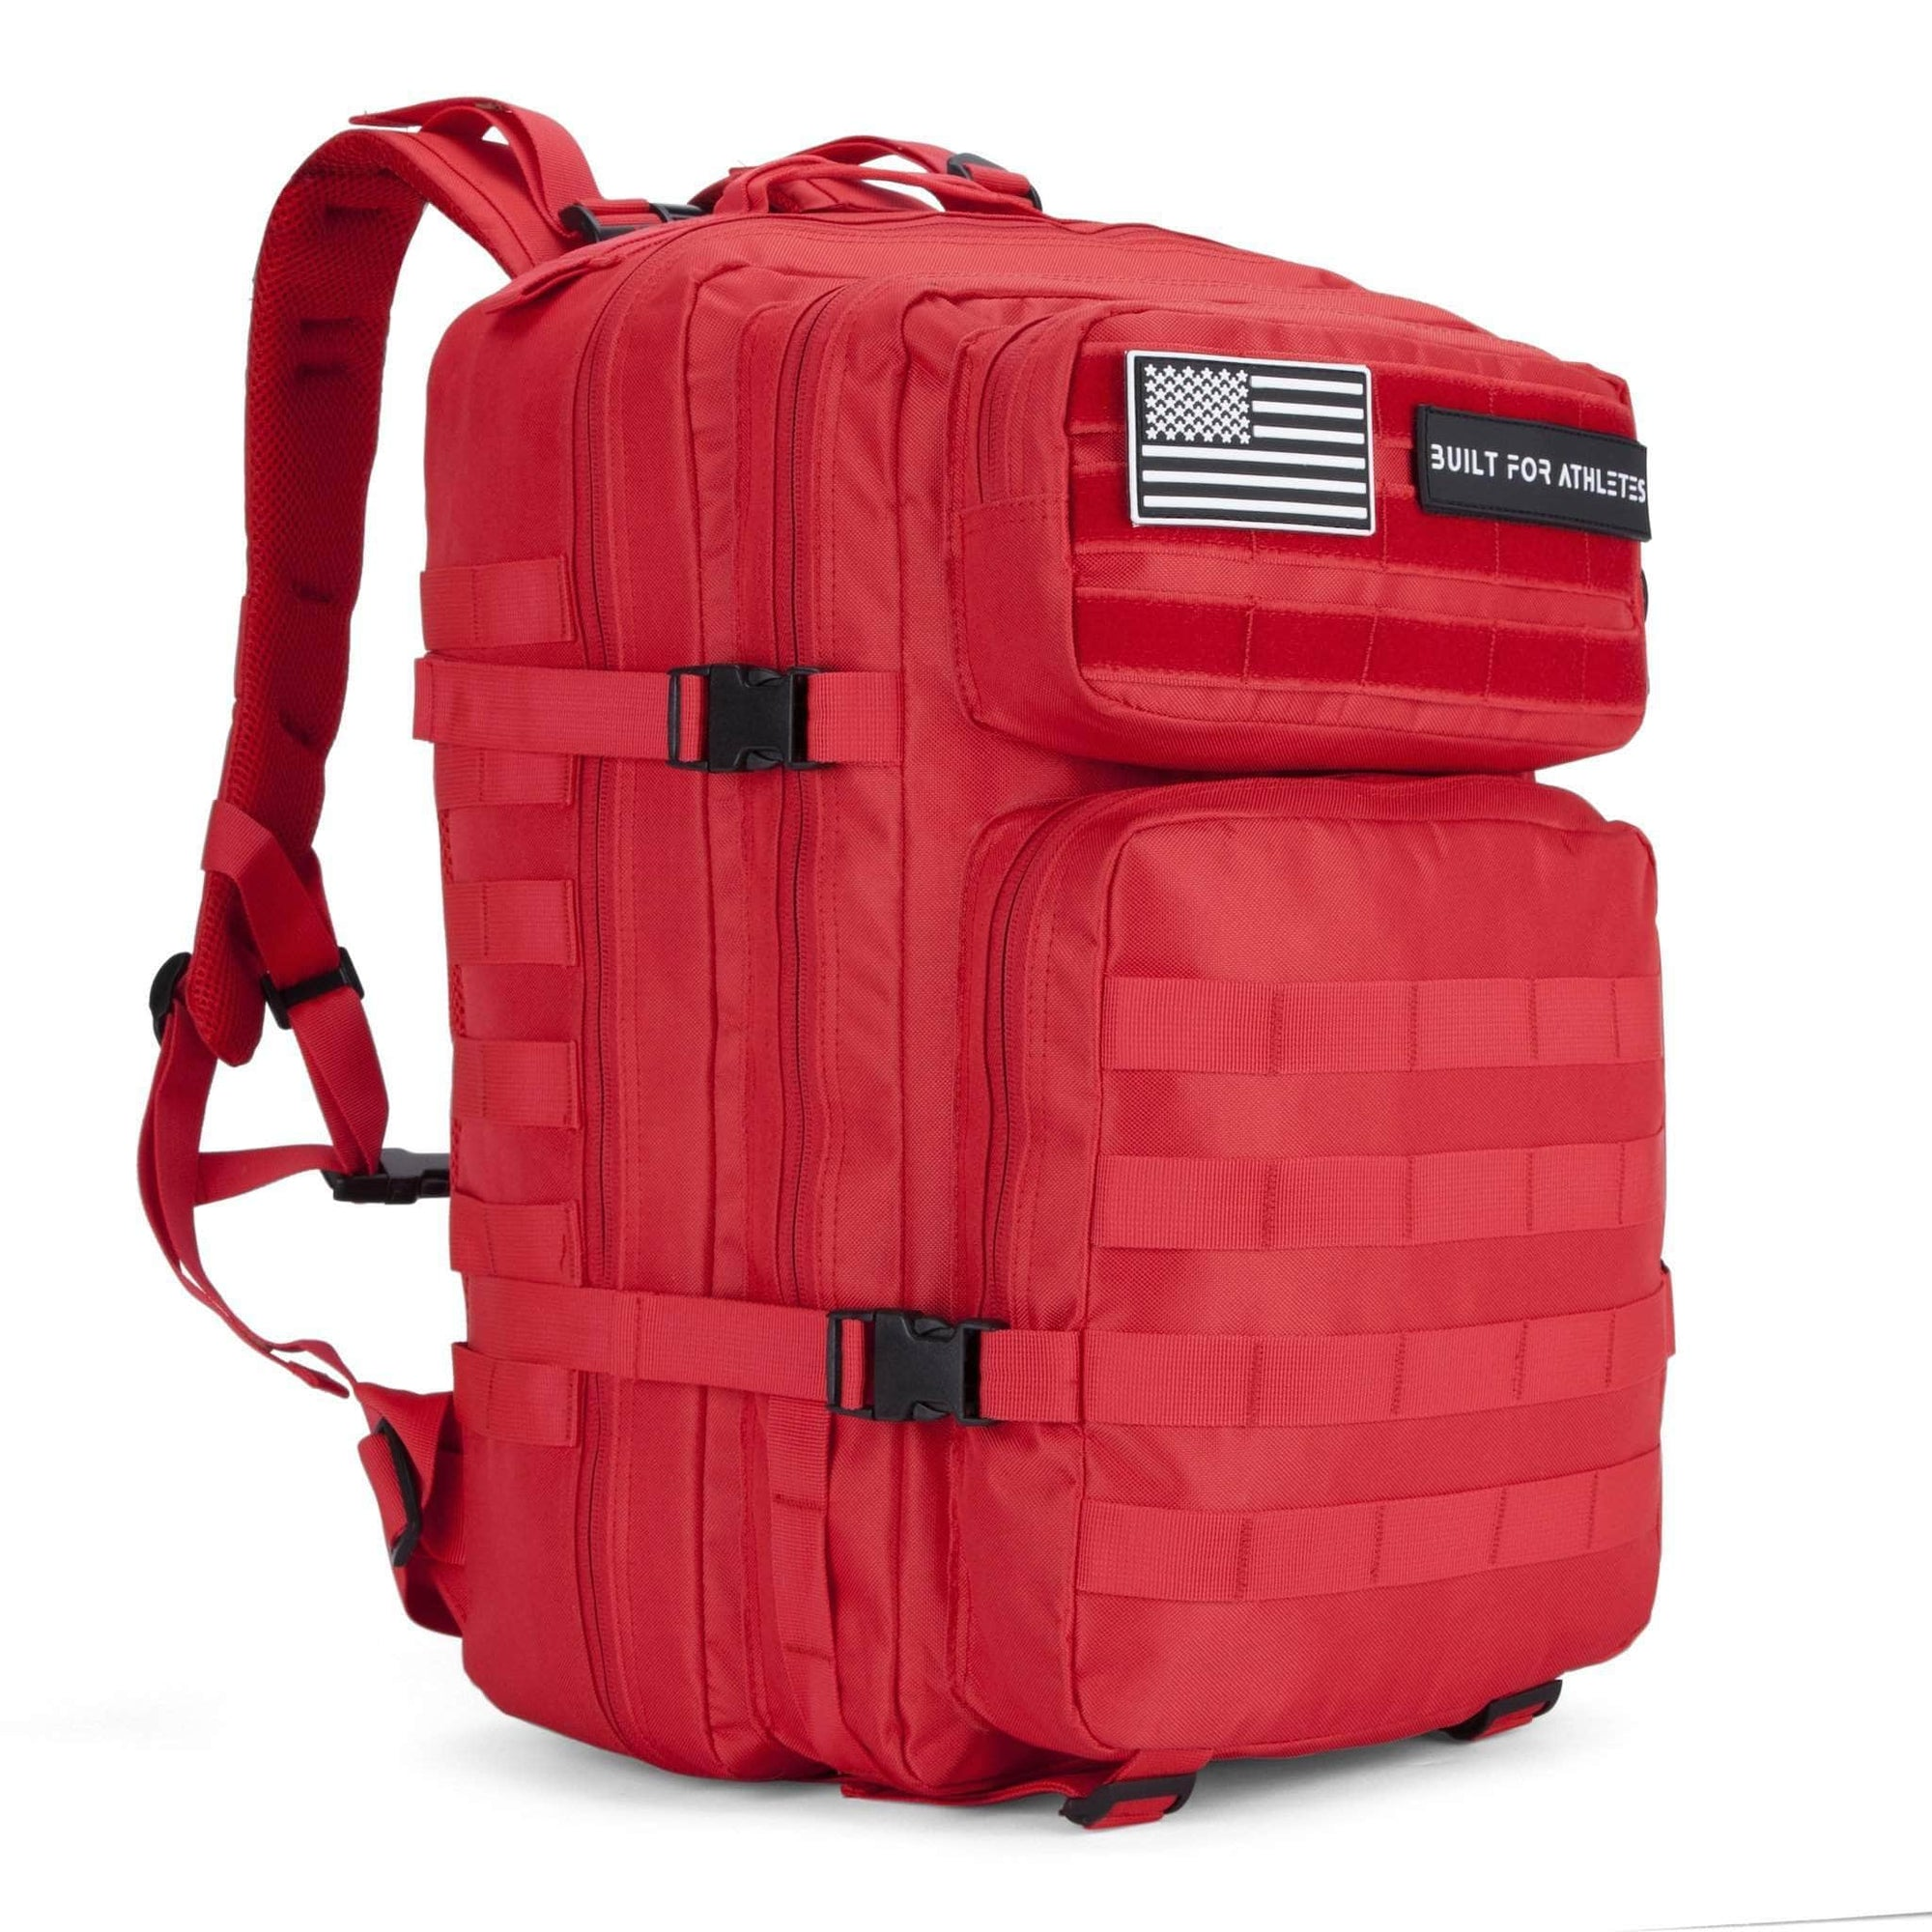 MetCon Store Backpacks Red Hero Backpack